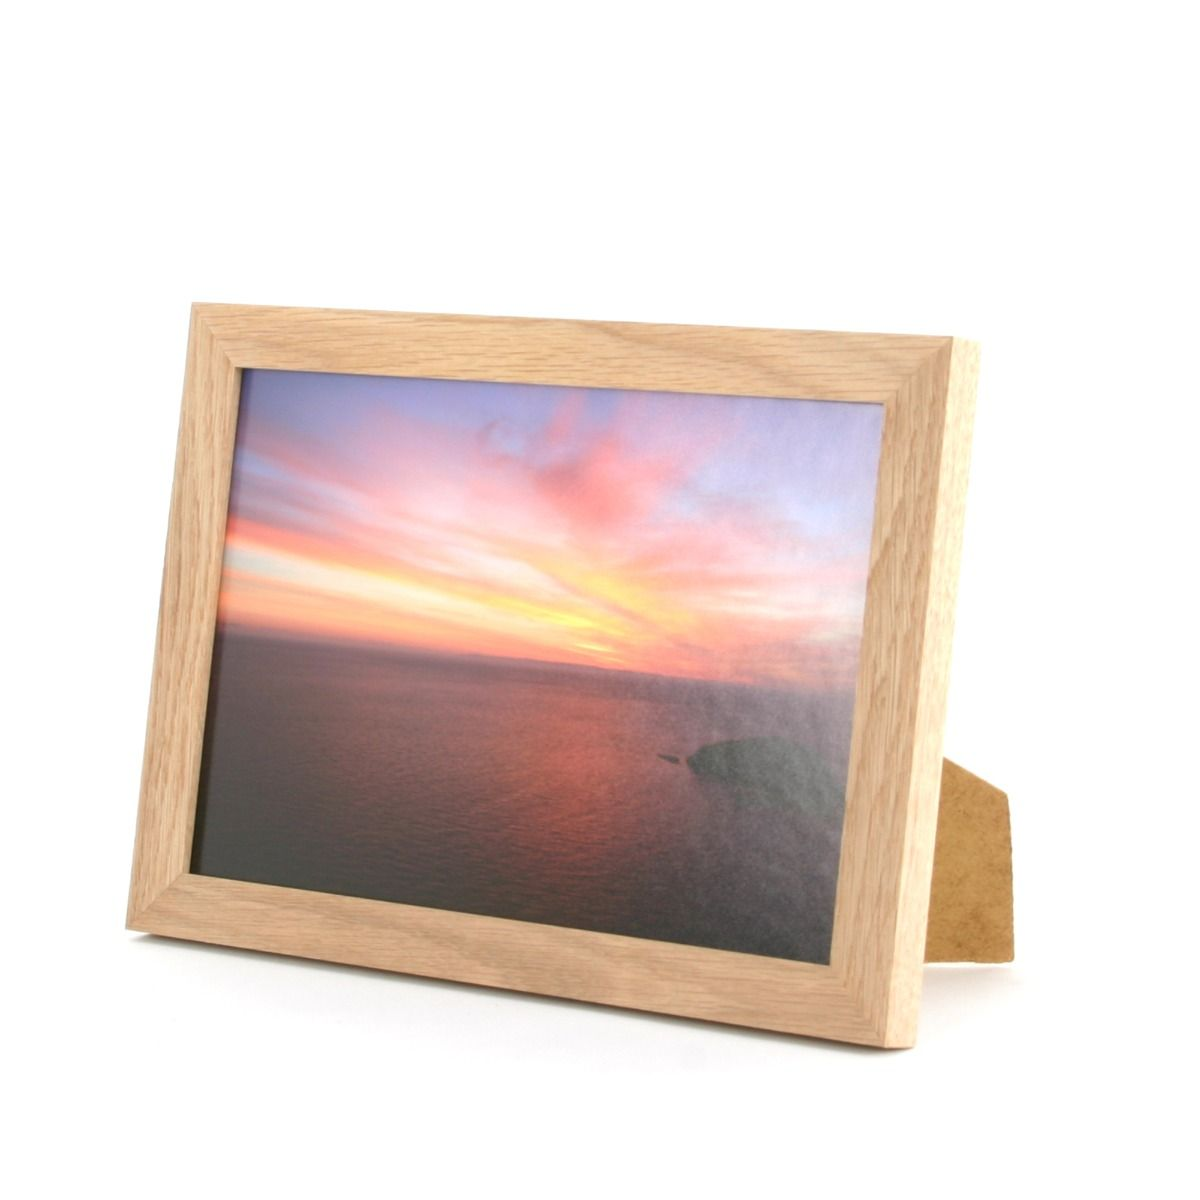 Solid Oak Photo Frame 10 X 7 Trade Prices Buy Online